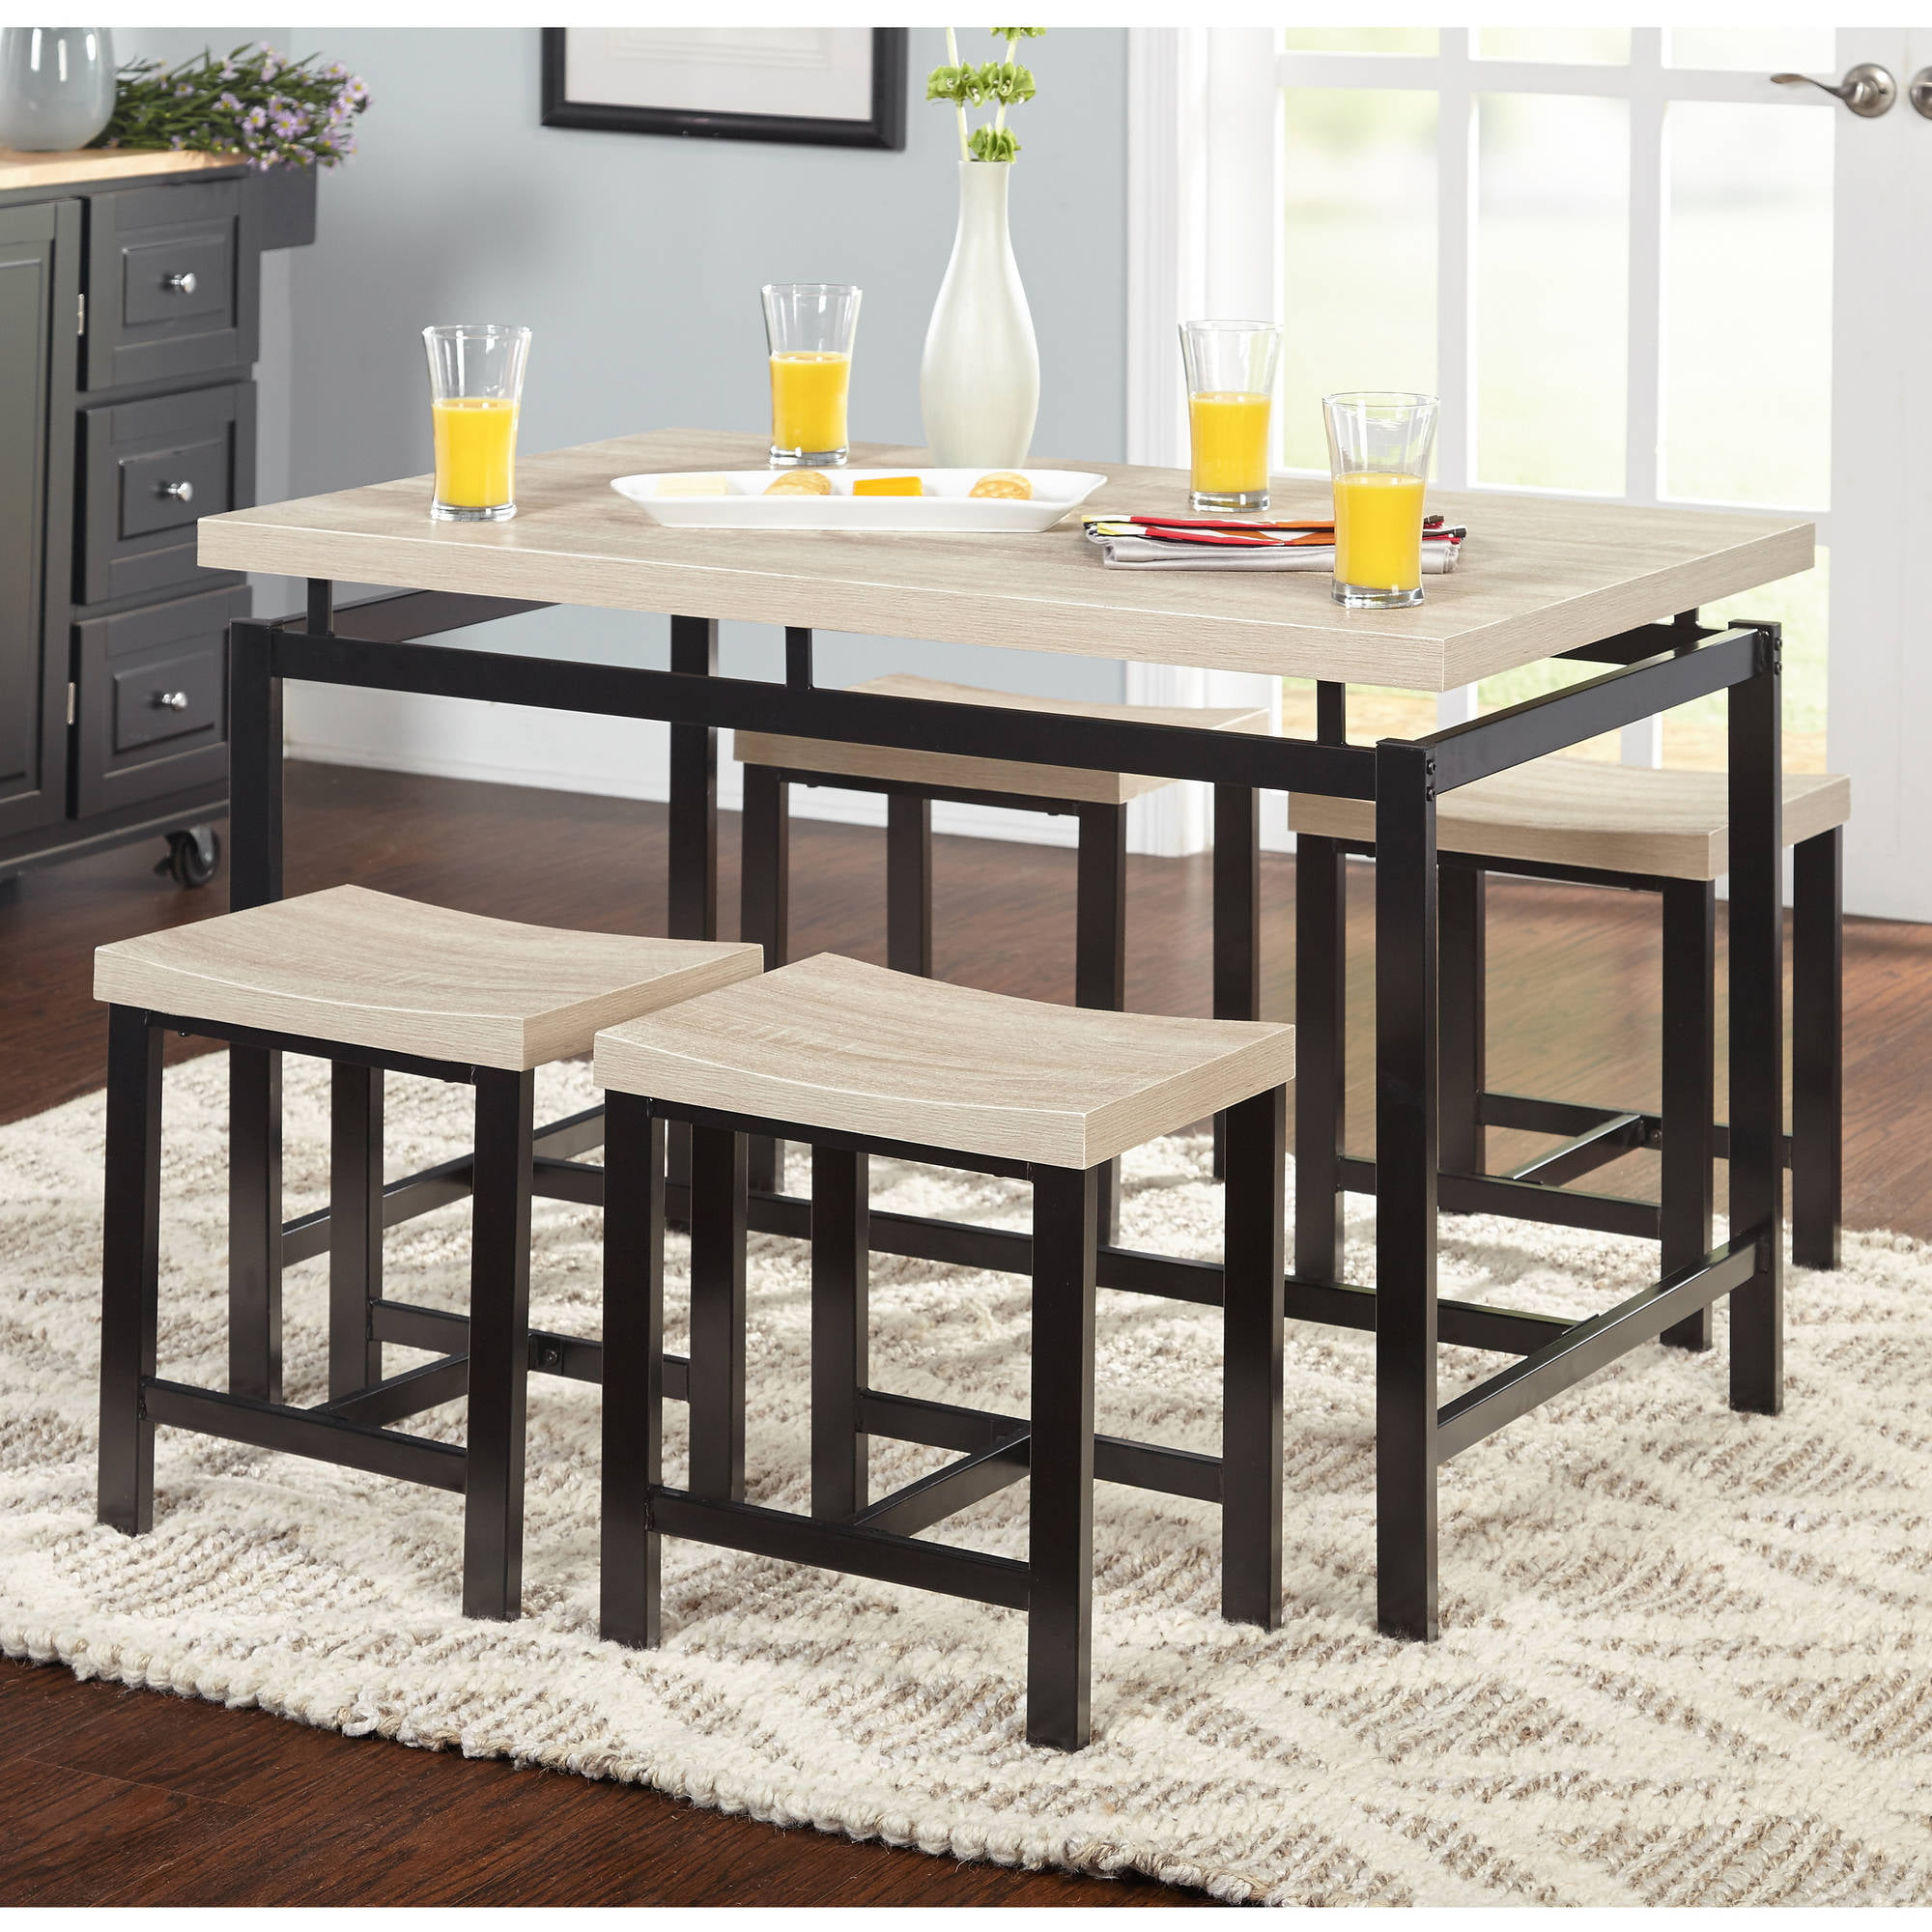 5-Piece Delano Dining Room Set, Natural by Overstock